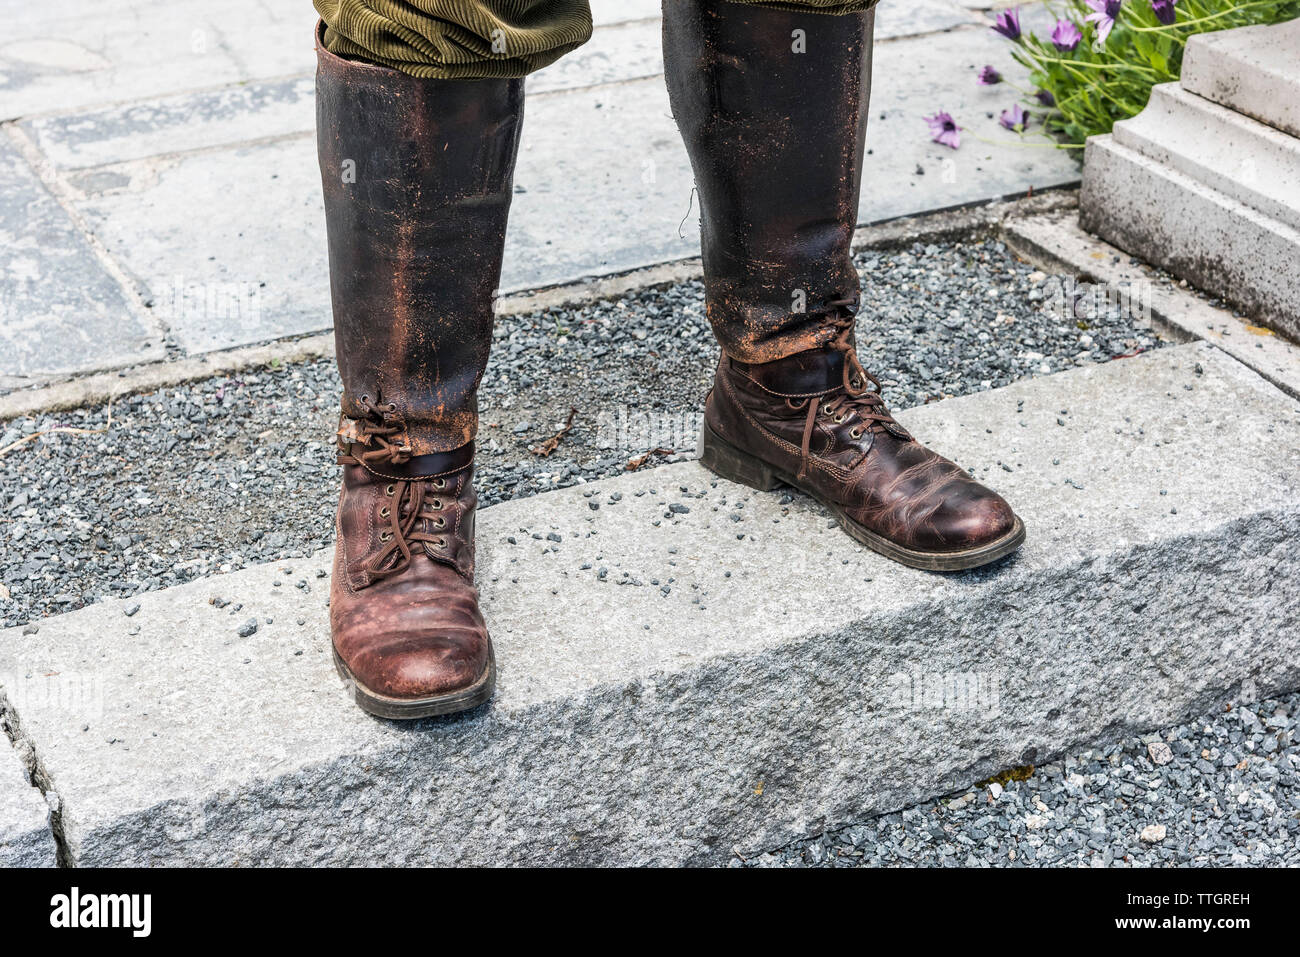 81253109de5 Well Worn Leather Stock Photos & Well Worn Leather Stock Images - Alamy